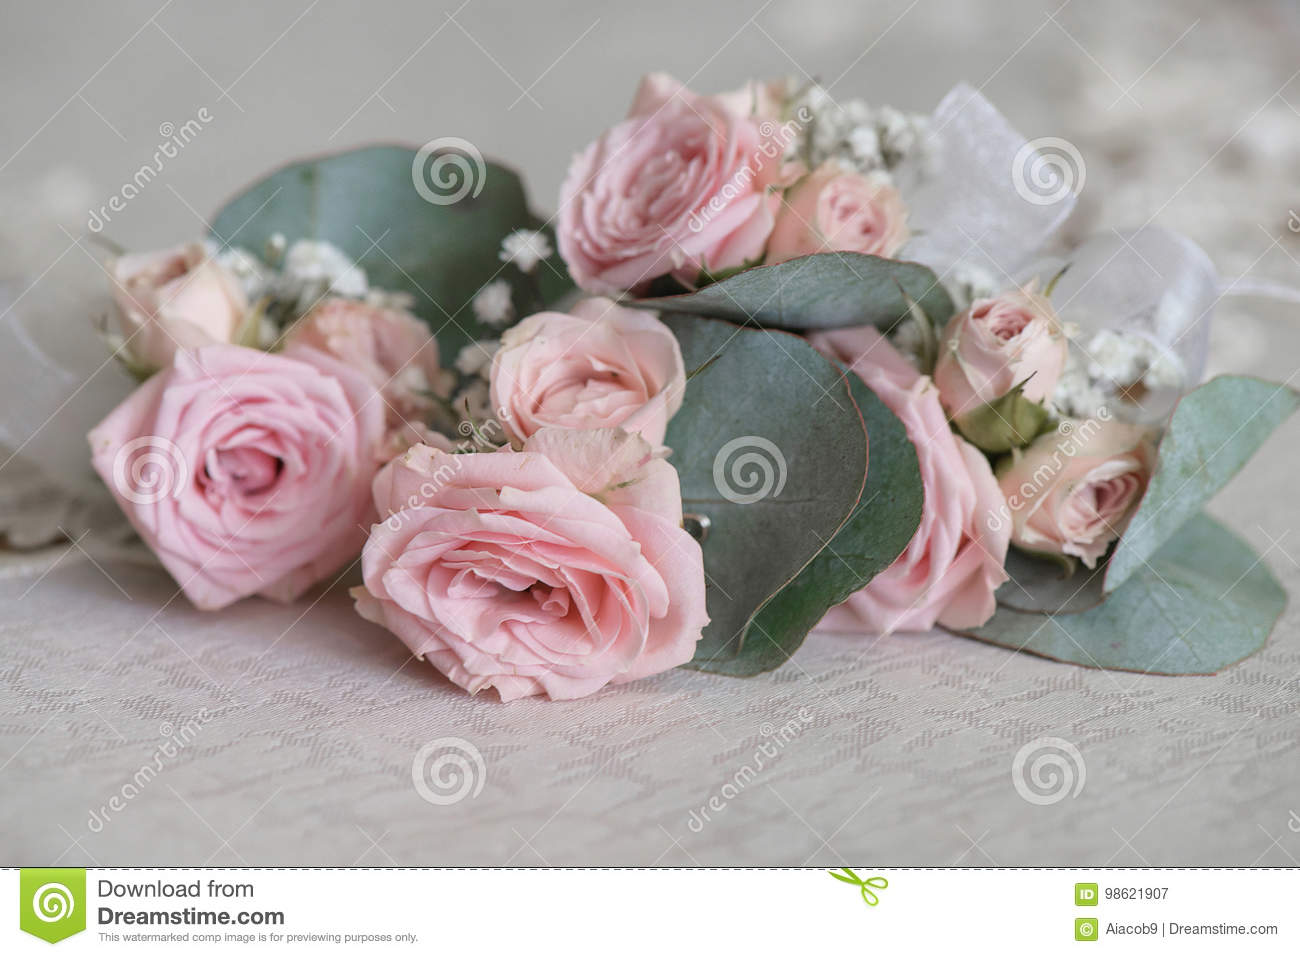 Withered dusky pink roses and over sized leaves bouquet on a table download withered dusky pink roses and over sized leaves bouquet on a table after mightylinksfo